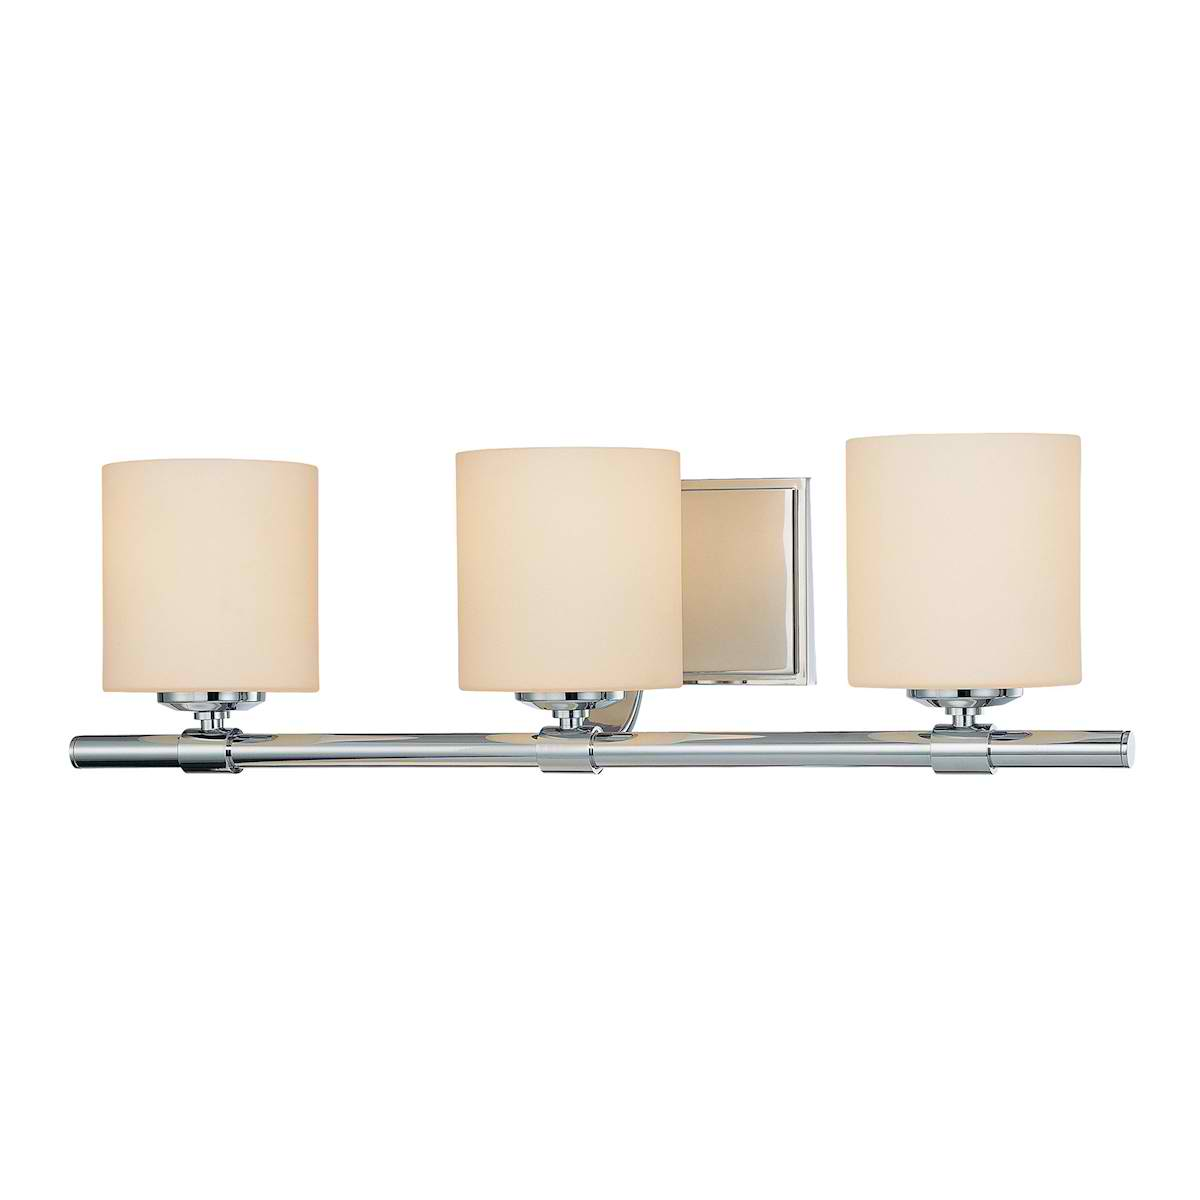 Slide Triple Lamp with Cylinder White Opal Glass / Chrome finish